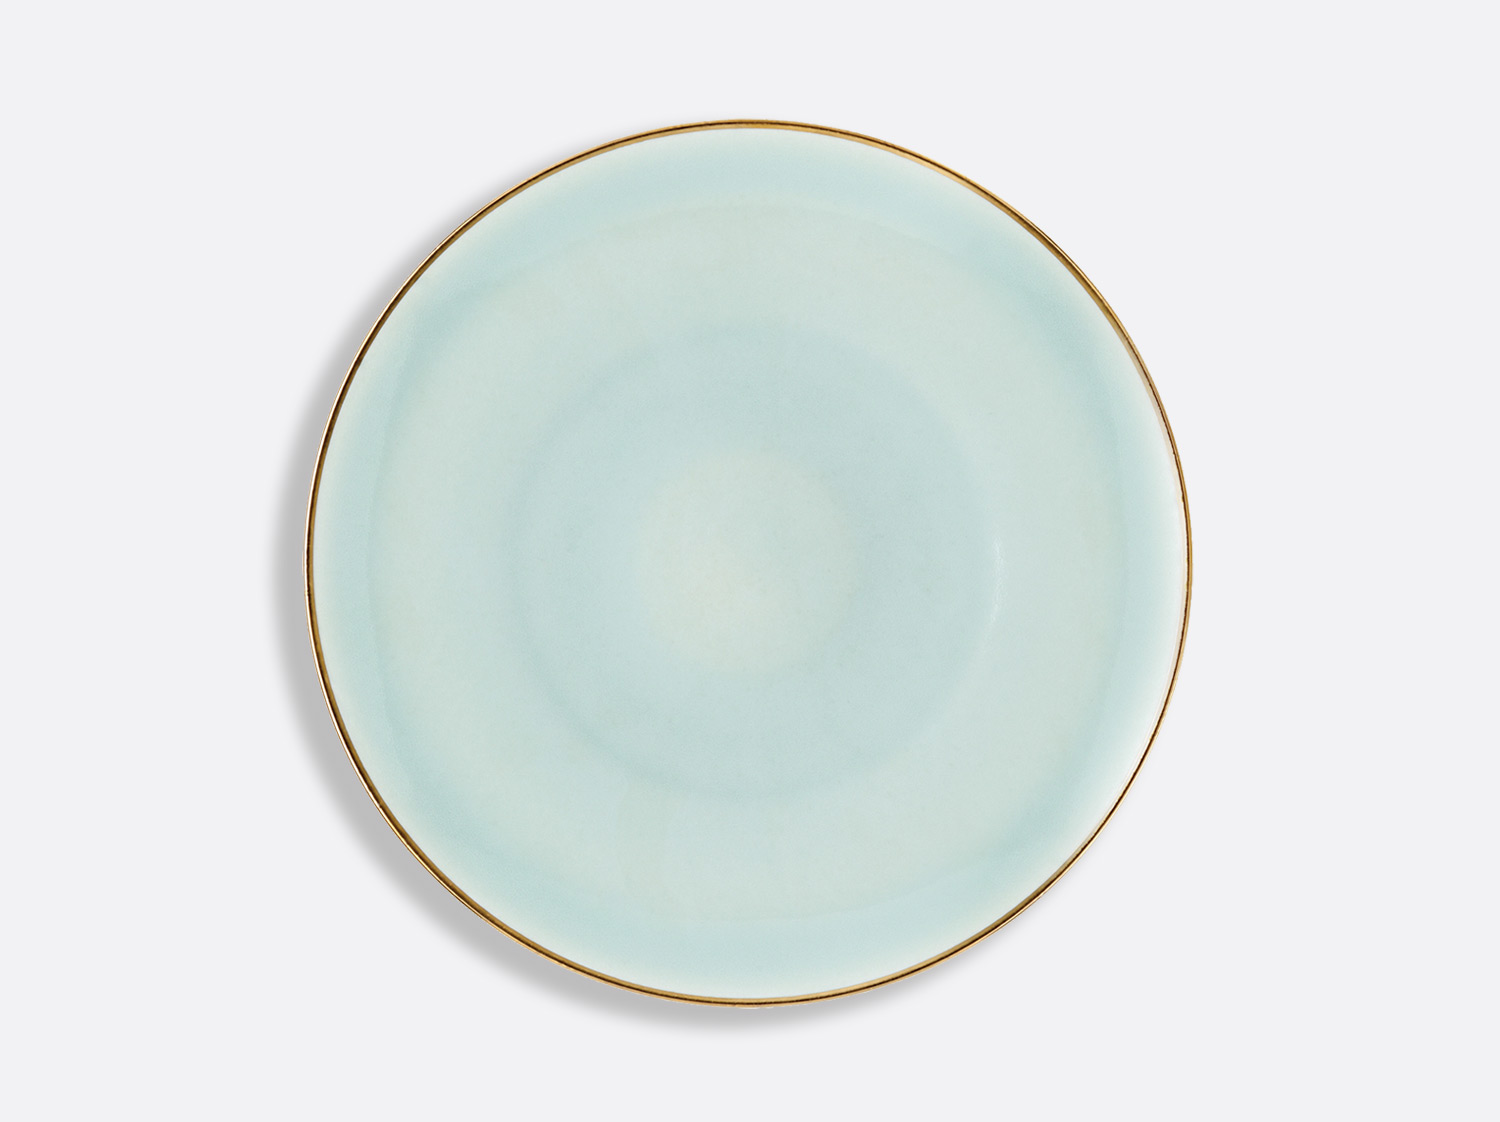 Assiette Domus Celadon Or 27 cm en porcelaine de la collection Celsius Celadon Or Bernardaud